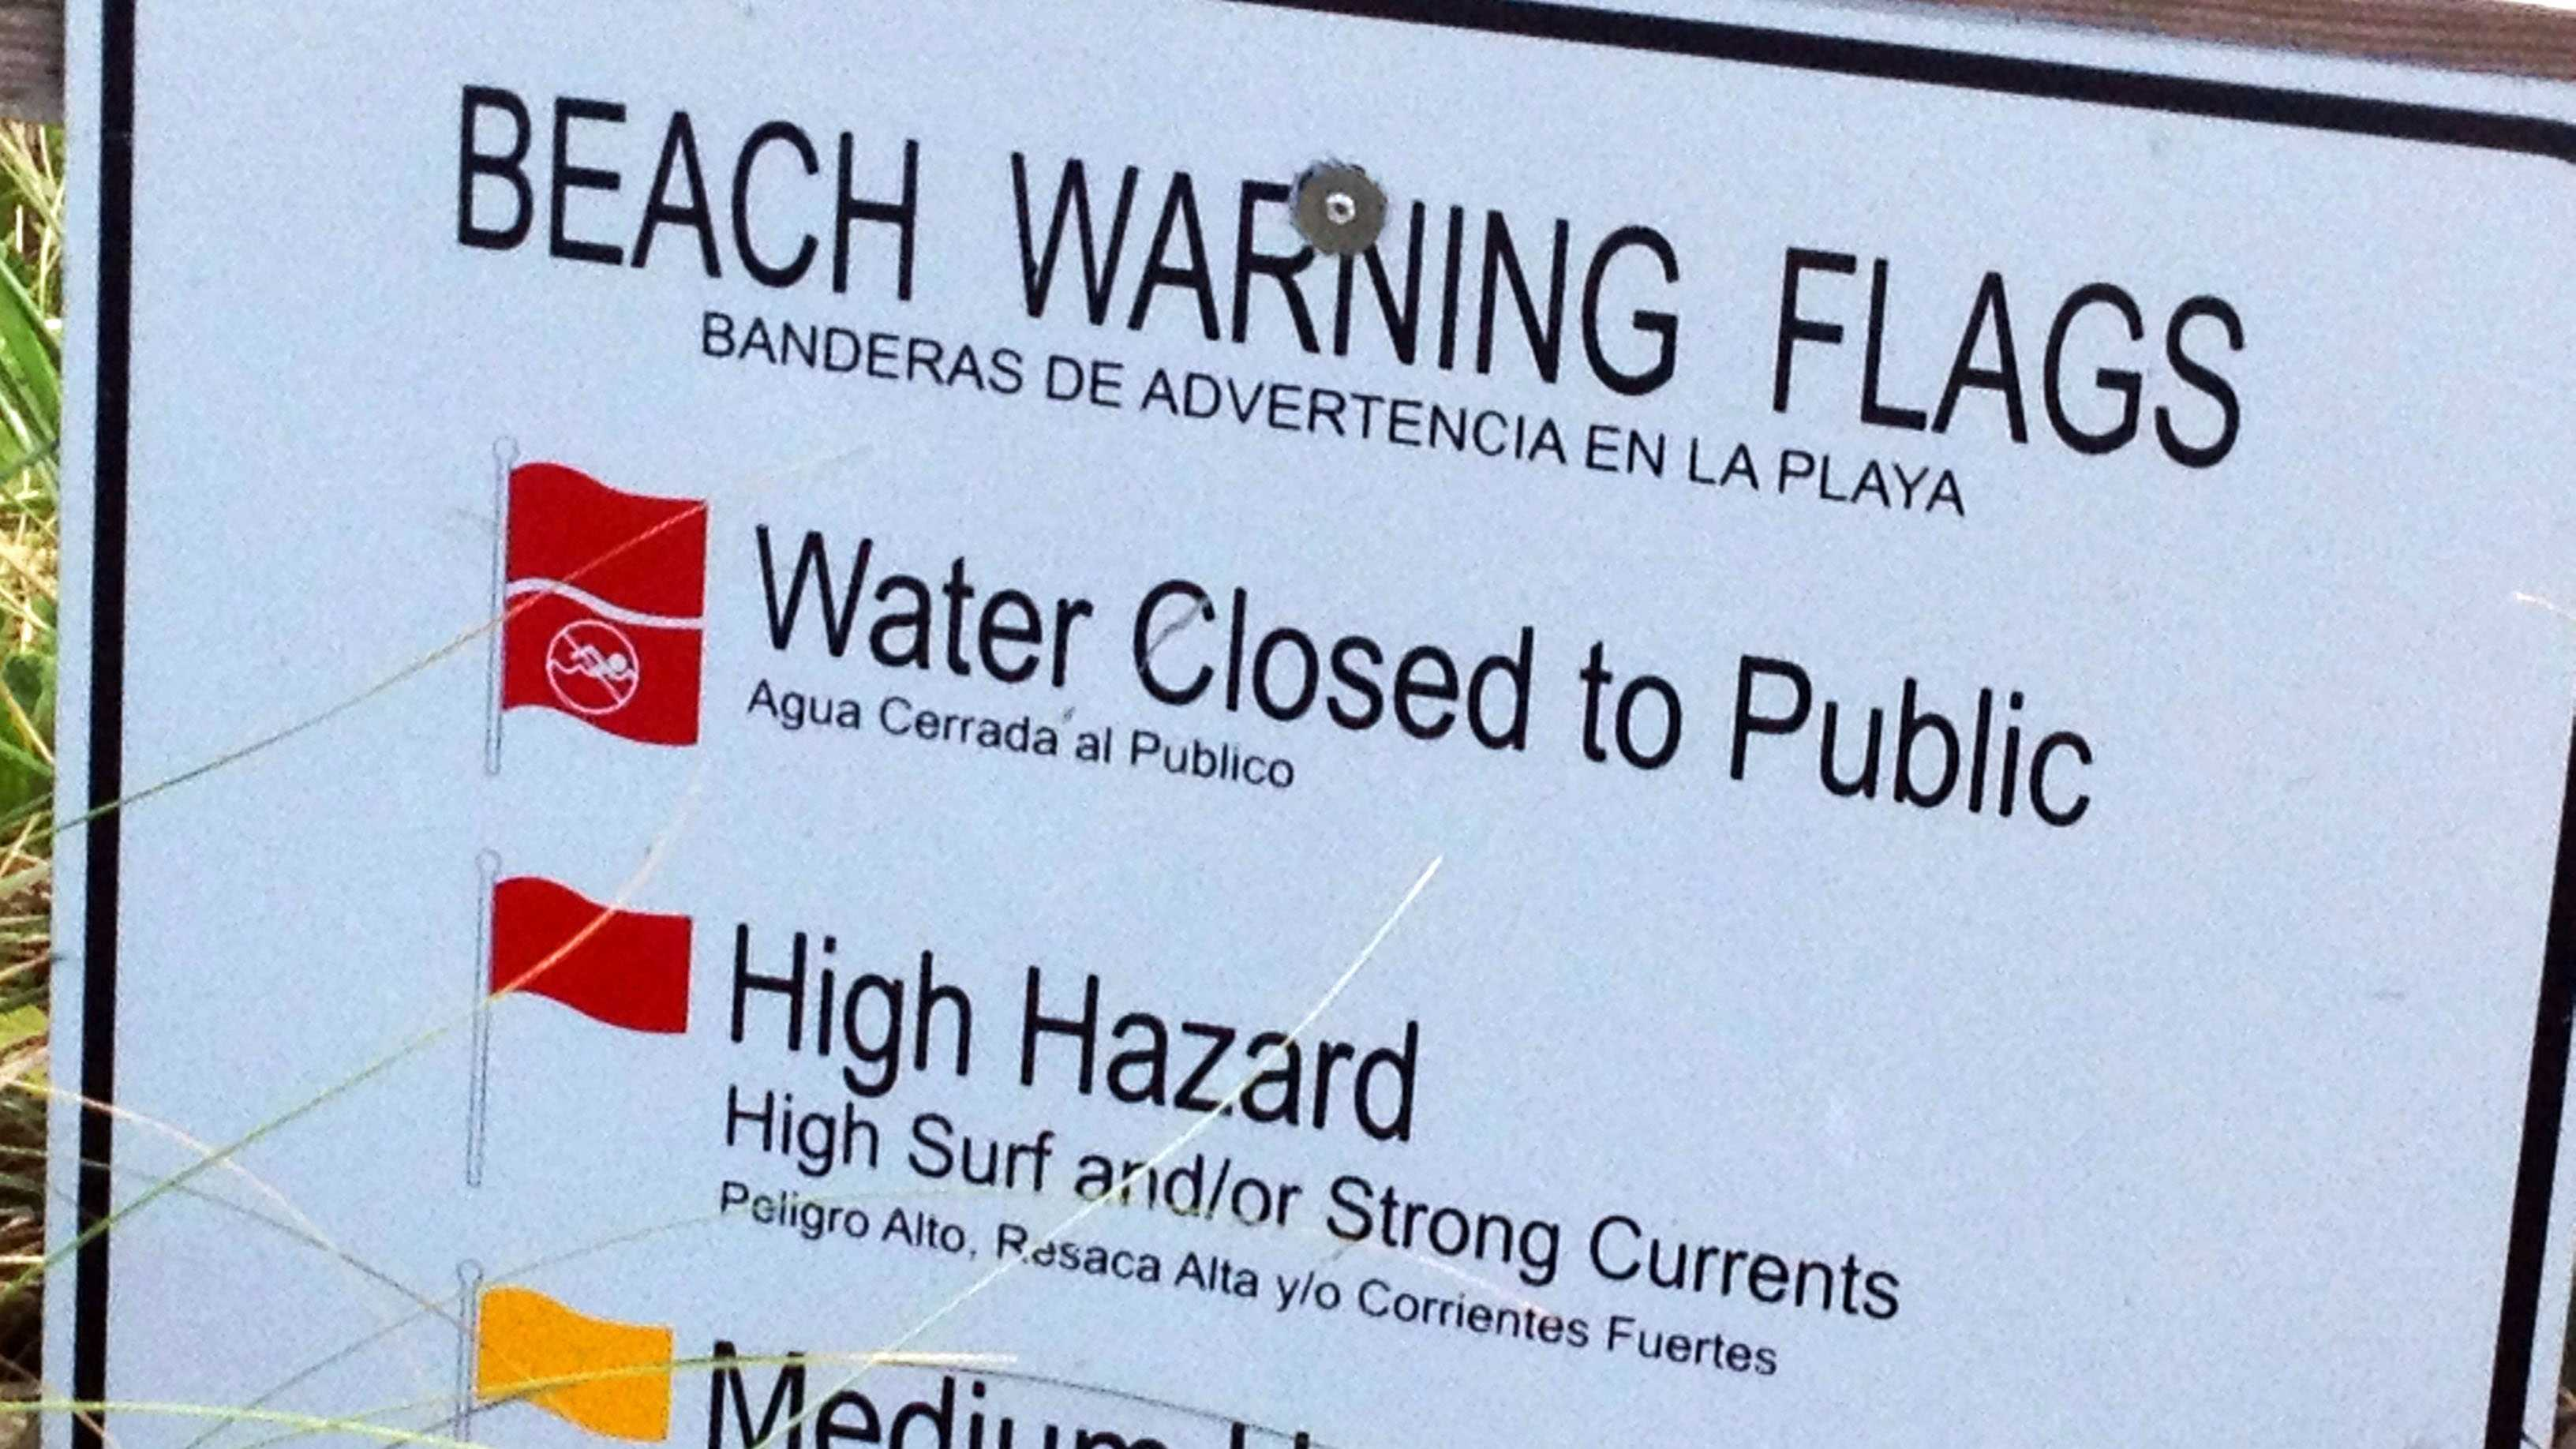 Beach lifeguards are warning swimmers to use caution when out in the water due to high surf and rip currents.